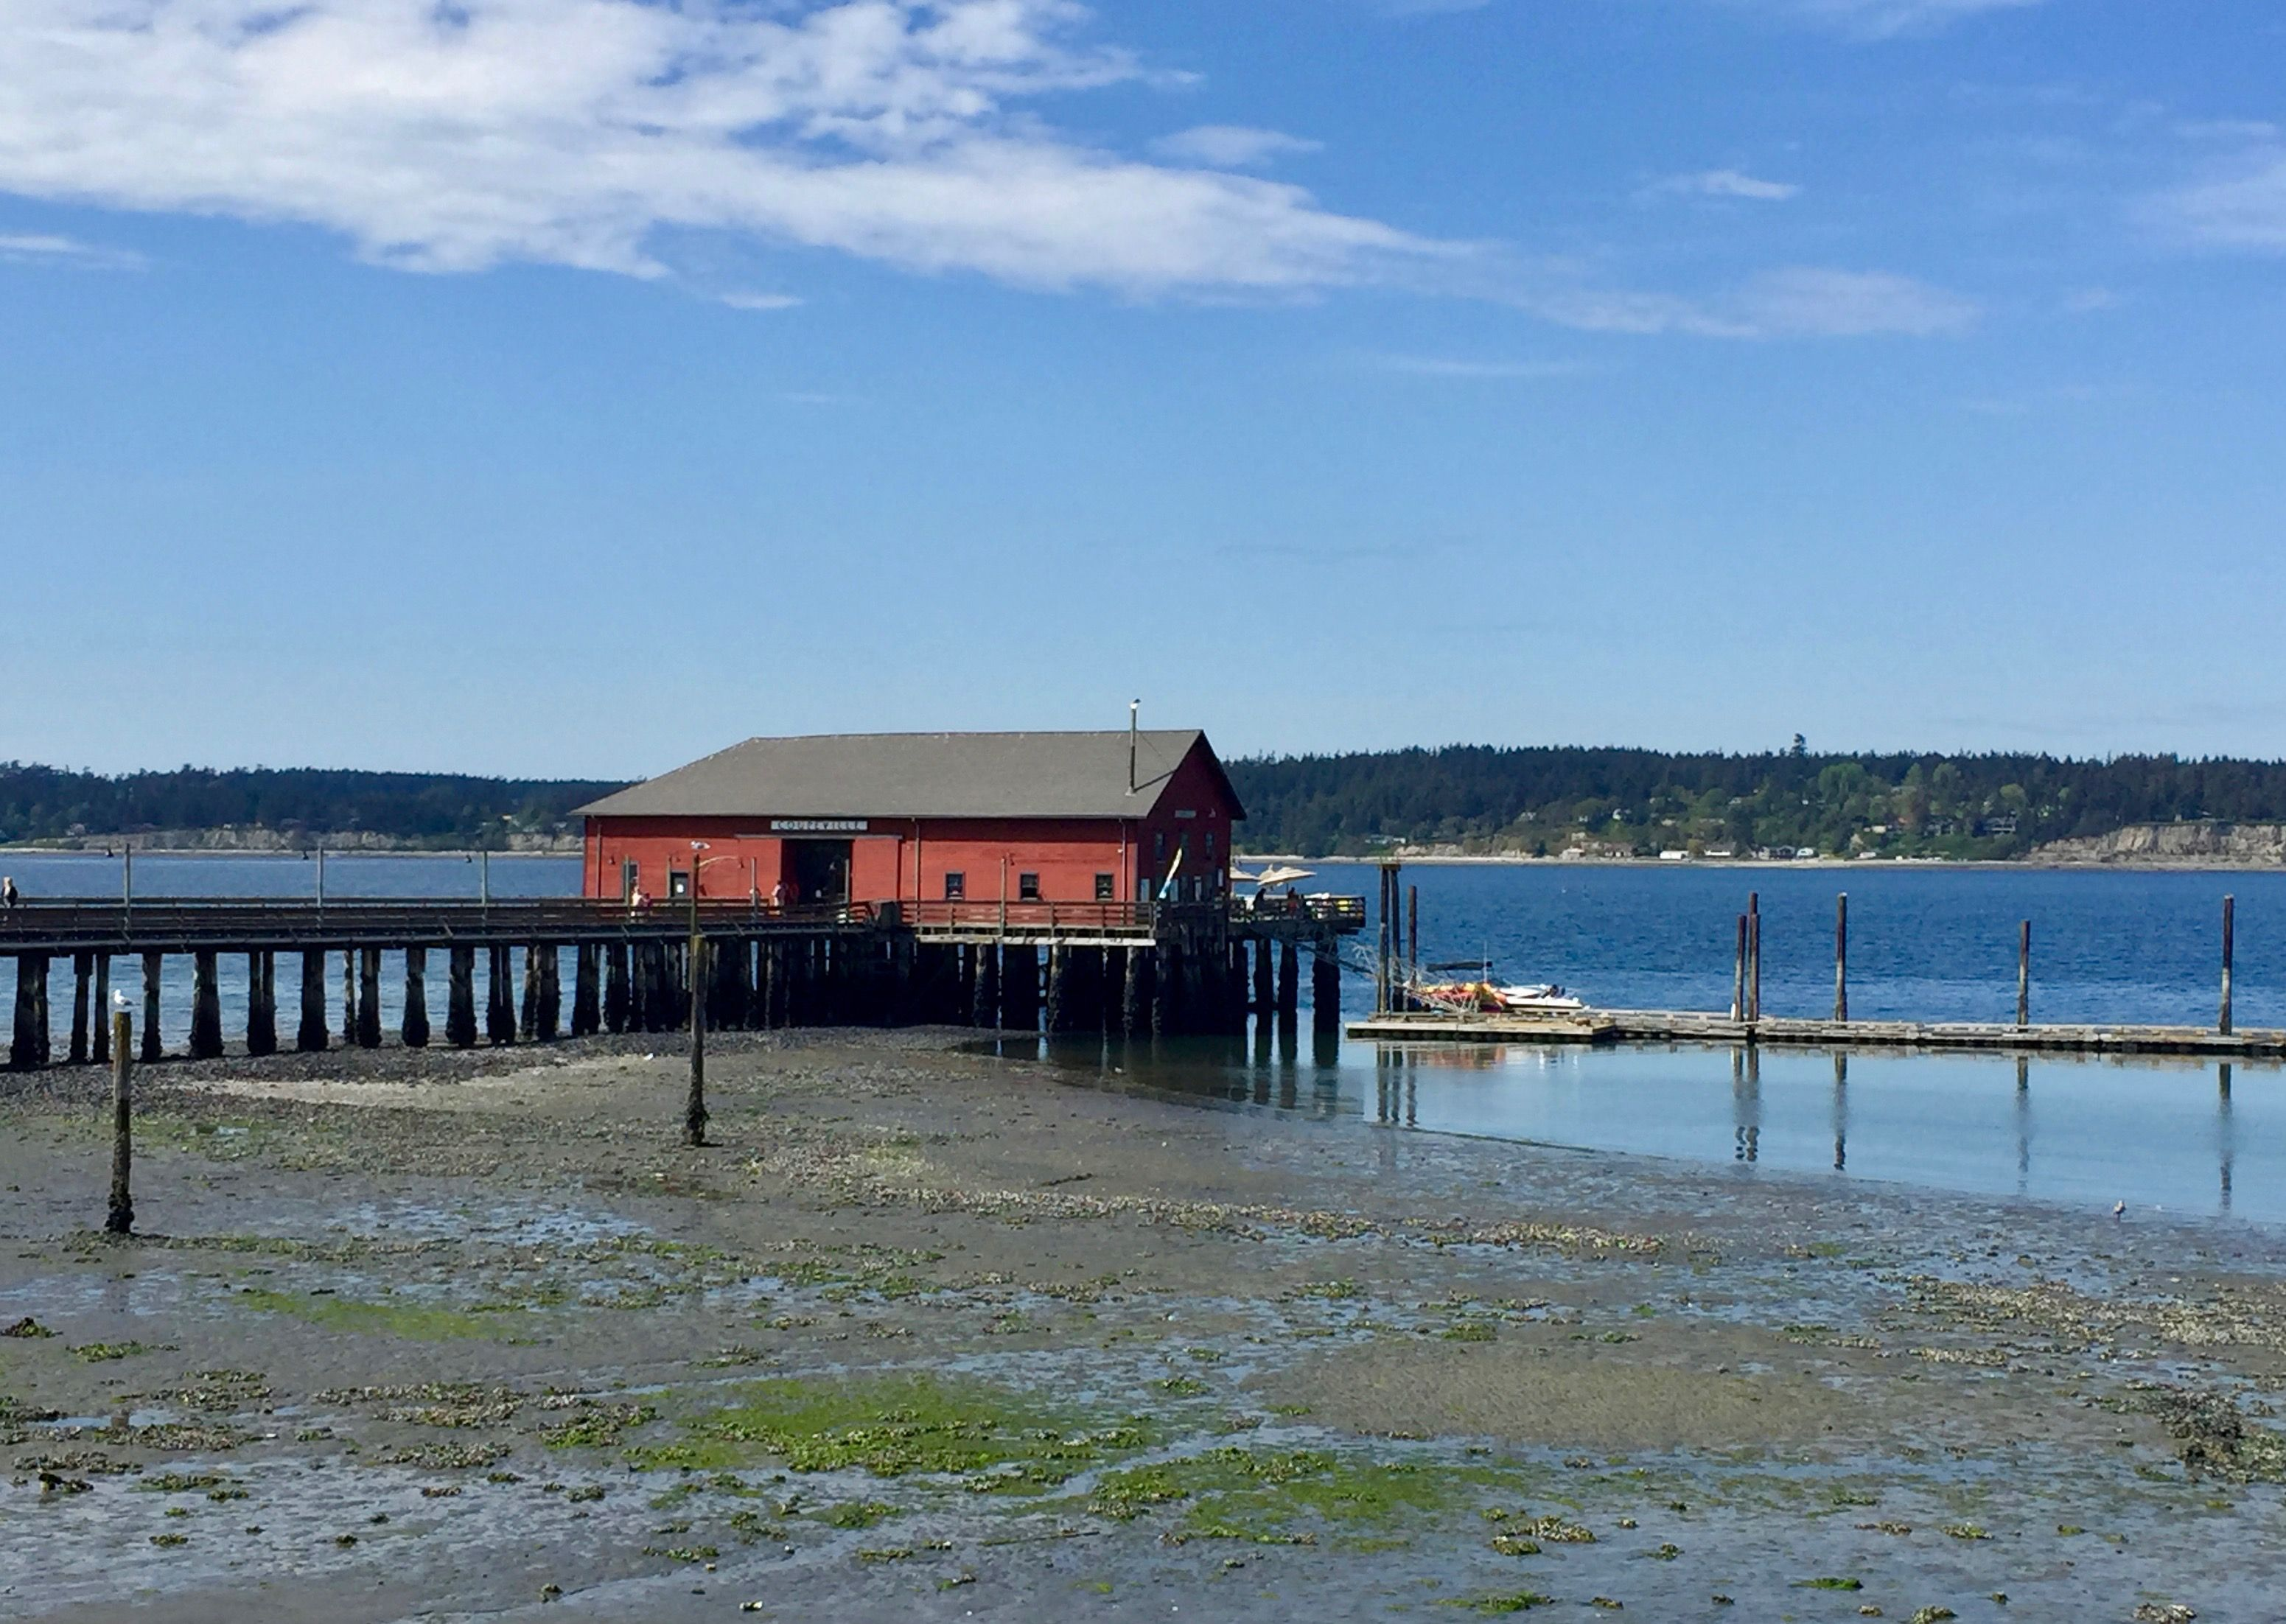 Weekend Getaway to Whidbey island, Coupeville Wharf